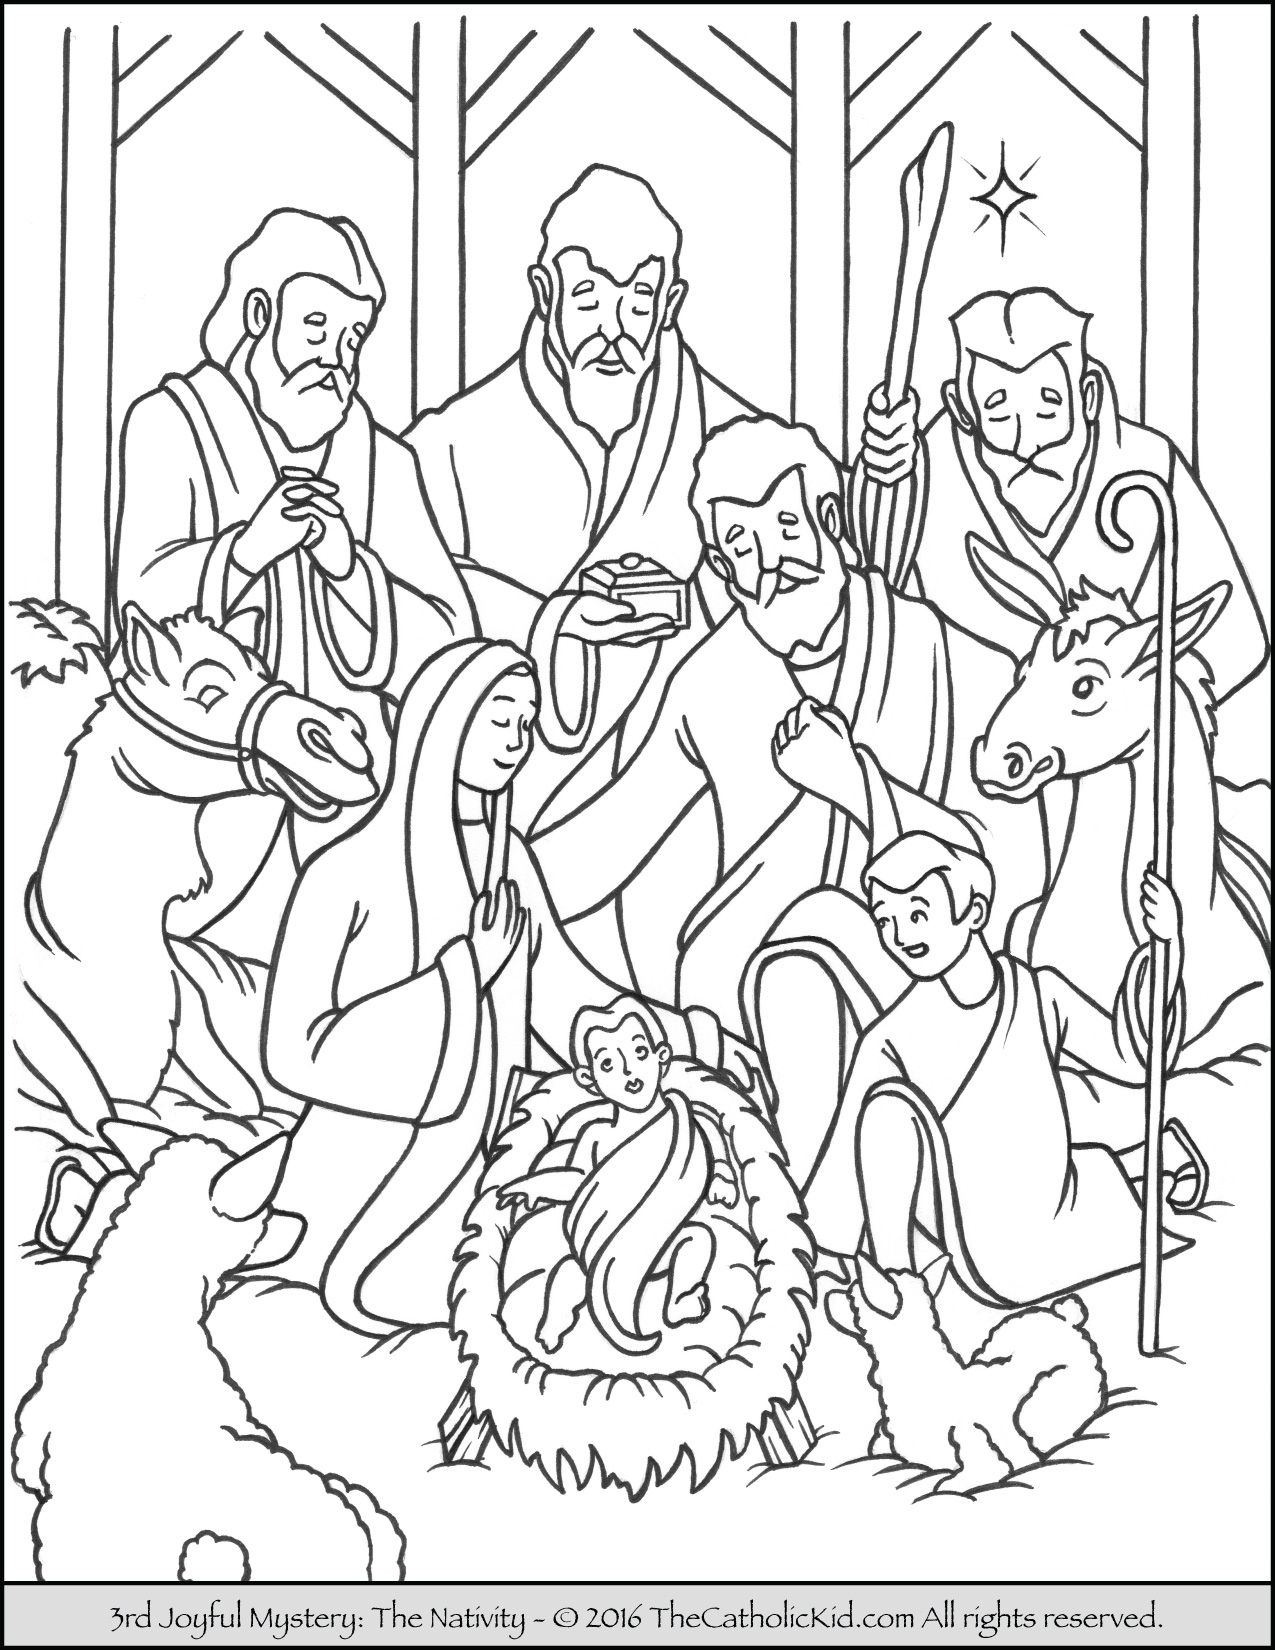 Rosary Coloring Page Mary And Joseph Coloring Pages Joyful Mysteries Rosary Coloring